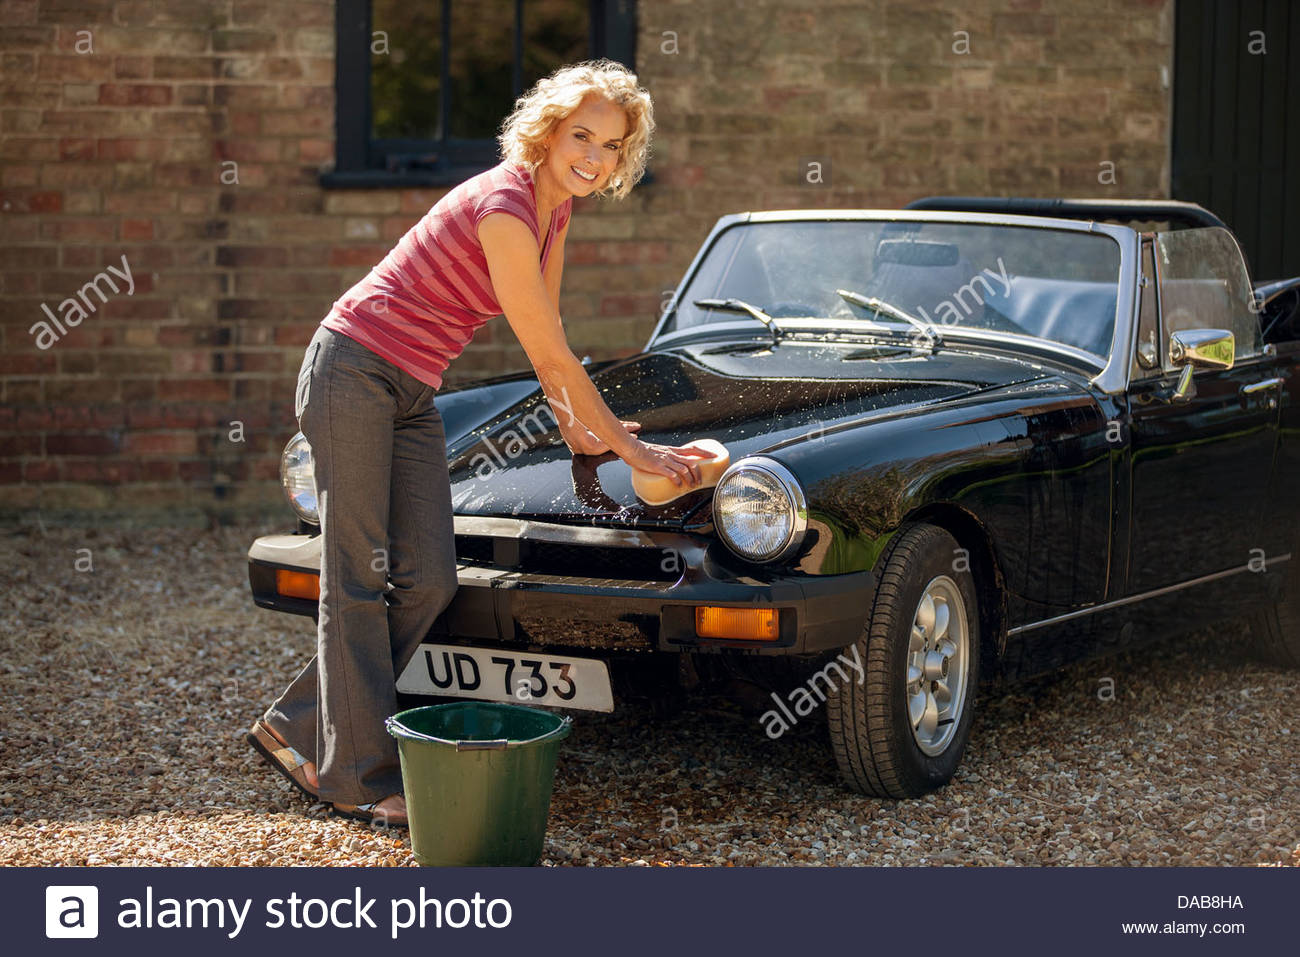 Auto Waschen Spiele Sports Clothes Stockfotos And Sports Clothes Bilder Alamy